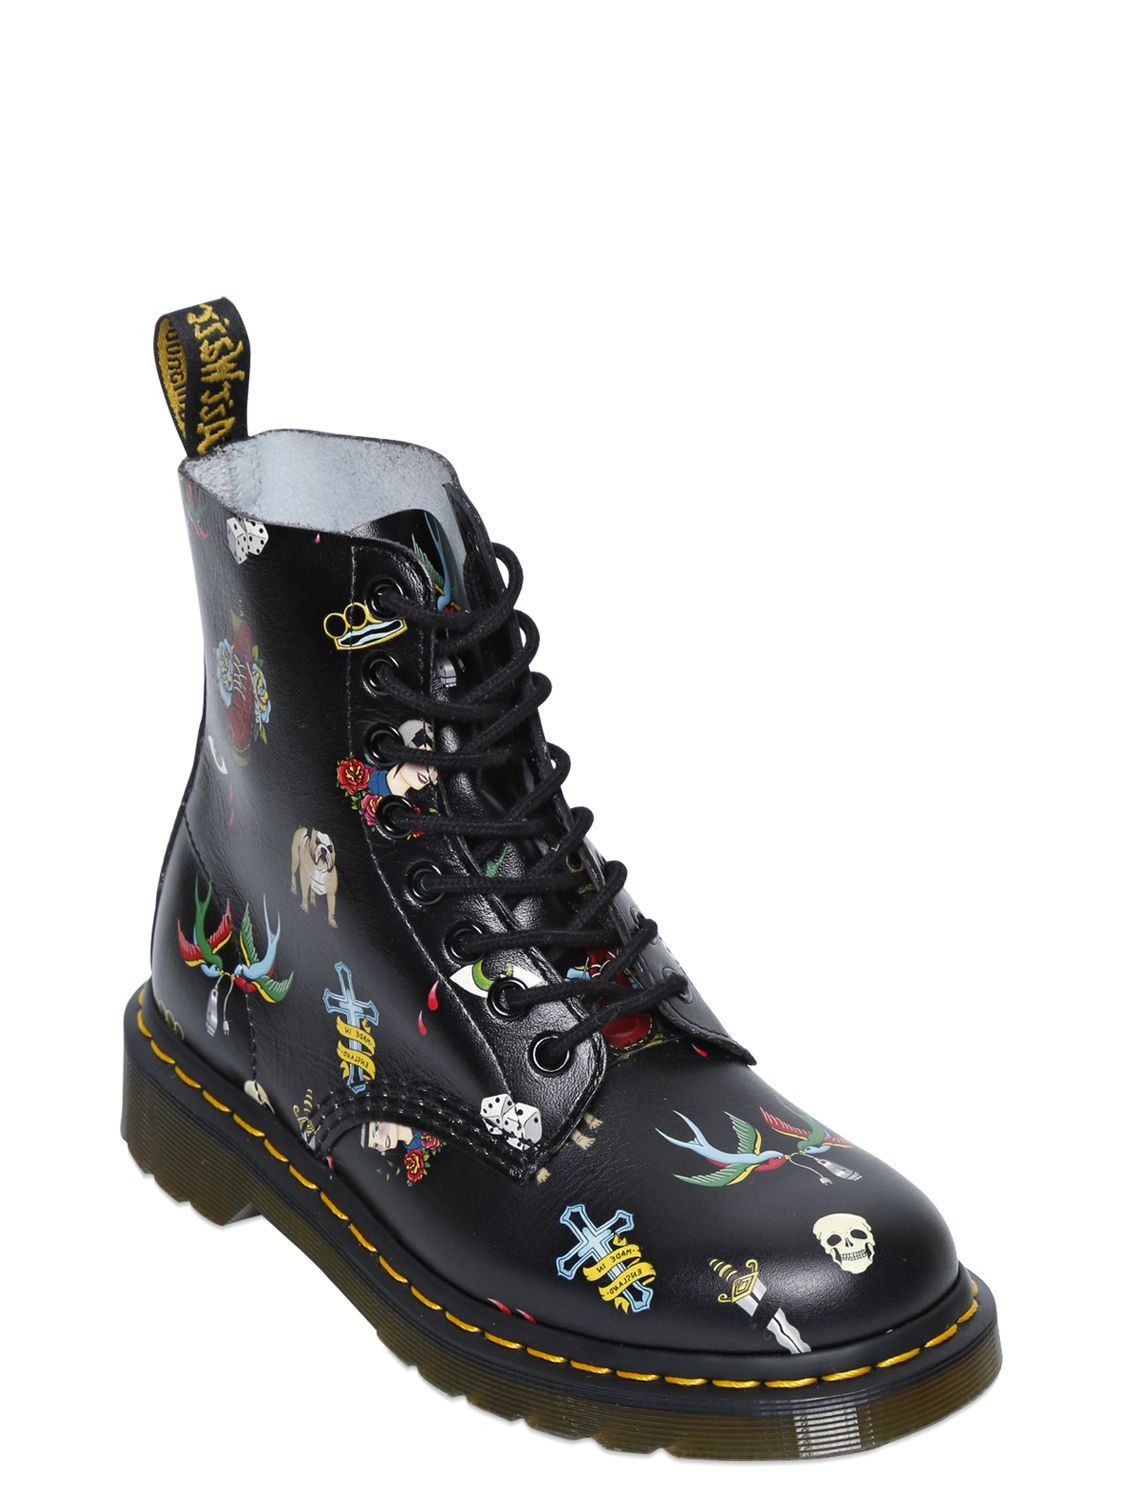 Womens Boots Many Colors 44129858 Dr Martens 30mm Tattoo Leather